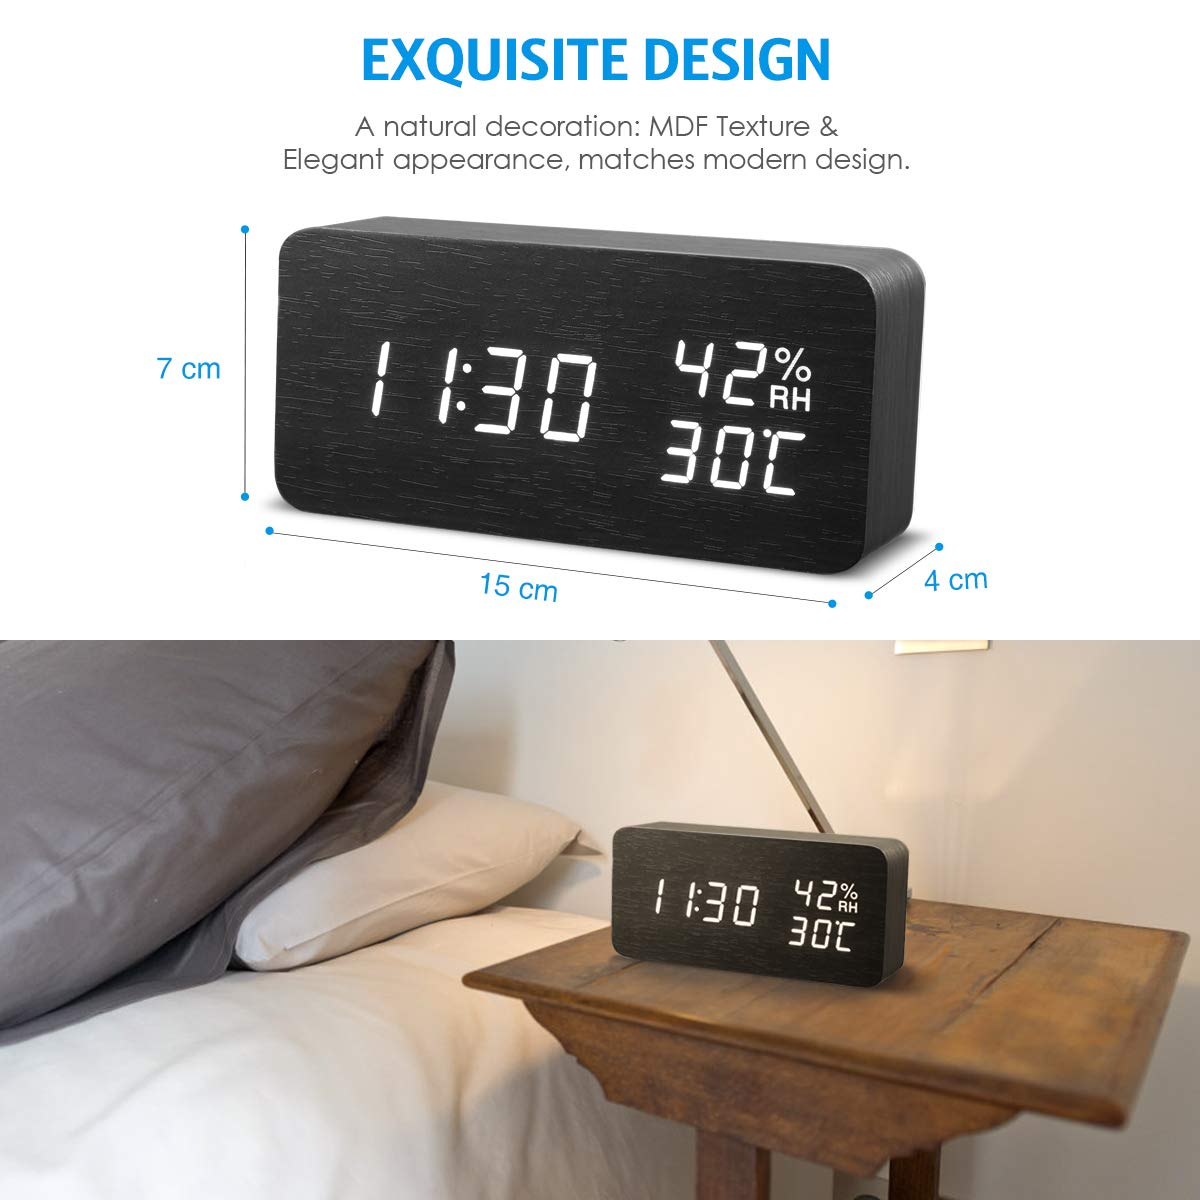 AMIR Alarm Clock, Wooden Digital Multi-Function Modern Cube LED Light, Smart Voice-Activated with 3 Alarm Sounds, Display Date Temperature & Humidity for Home, Kitchen, Bedroom (Black) by AMIR (Image #7)